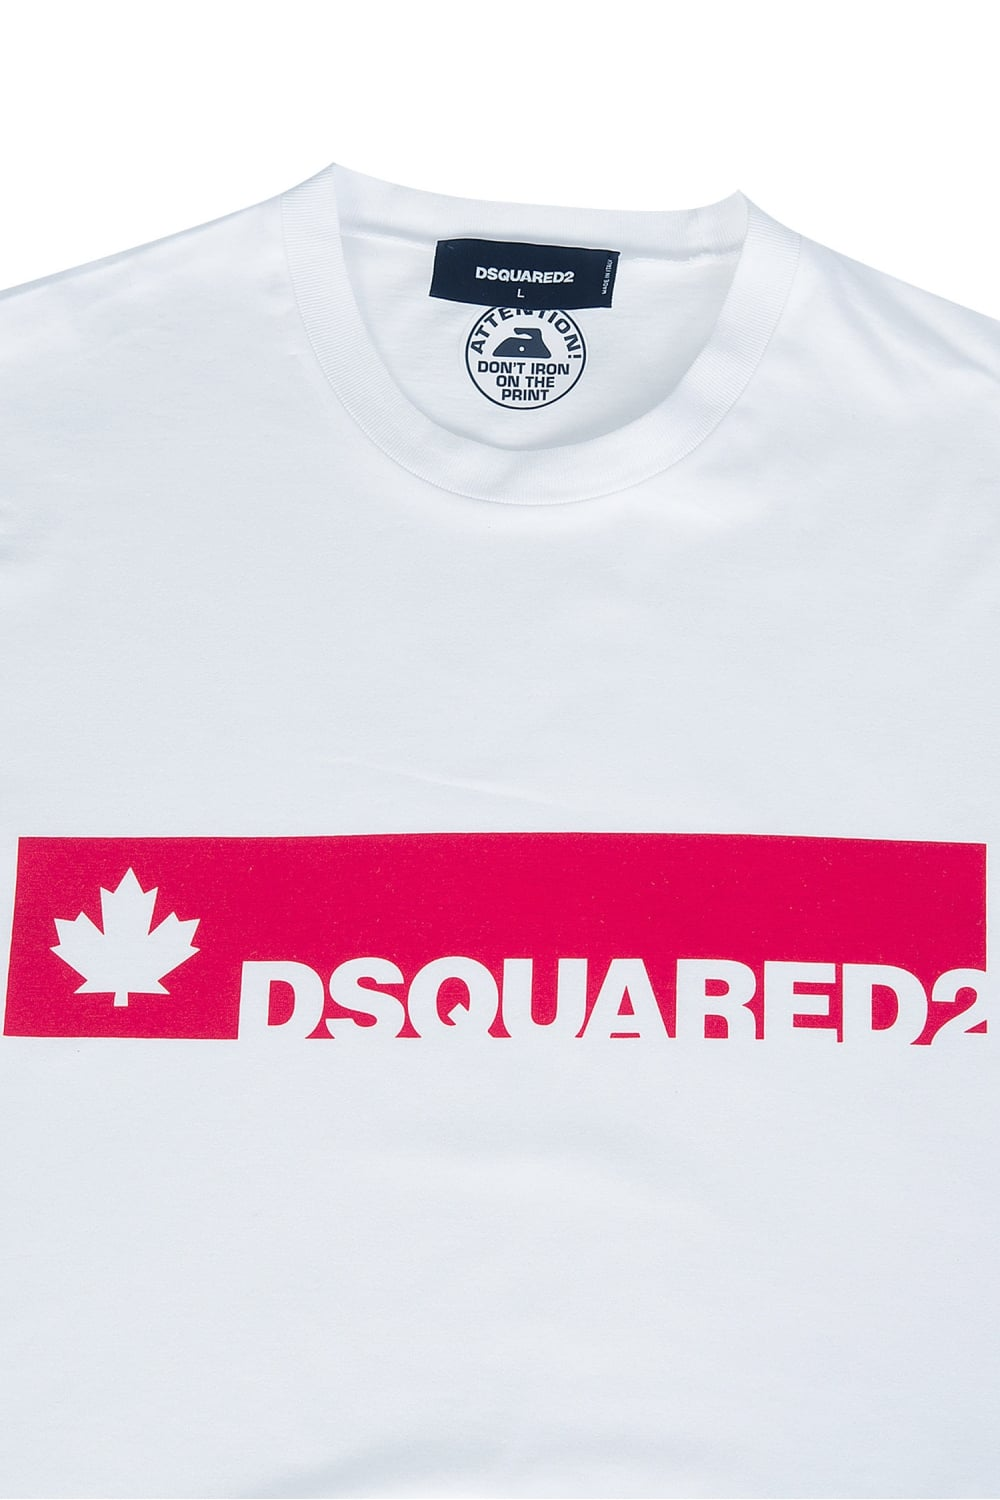 dsquared block logo t shirt. Black Bedroom Furniture Sets. Home Design Ideas